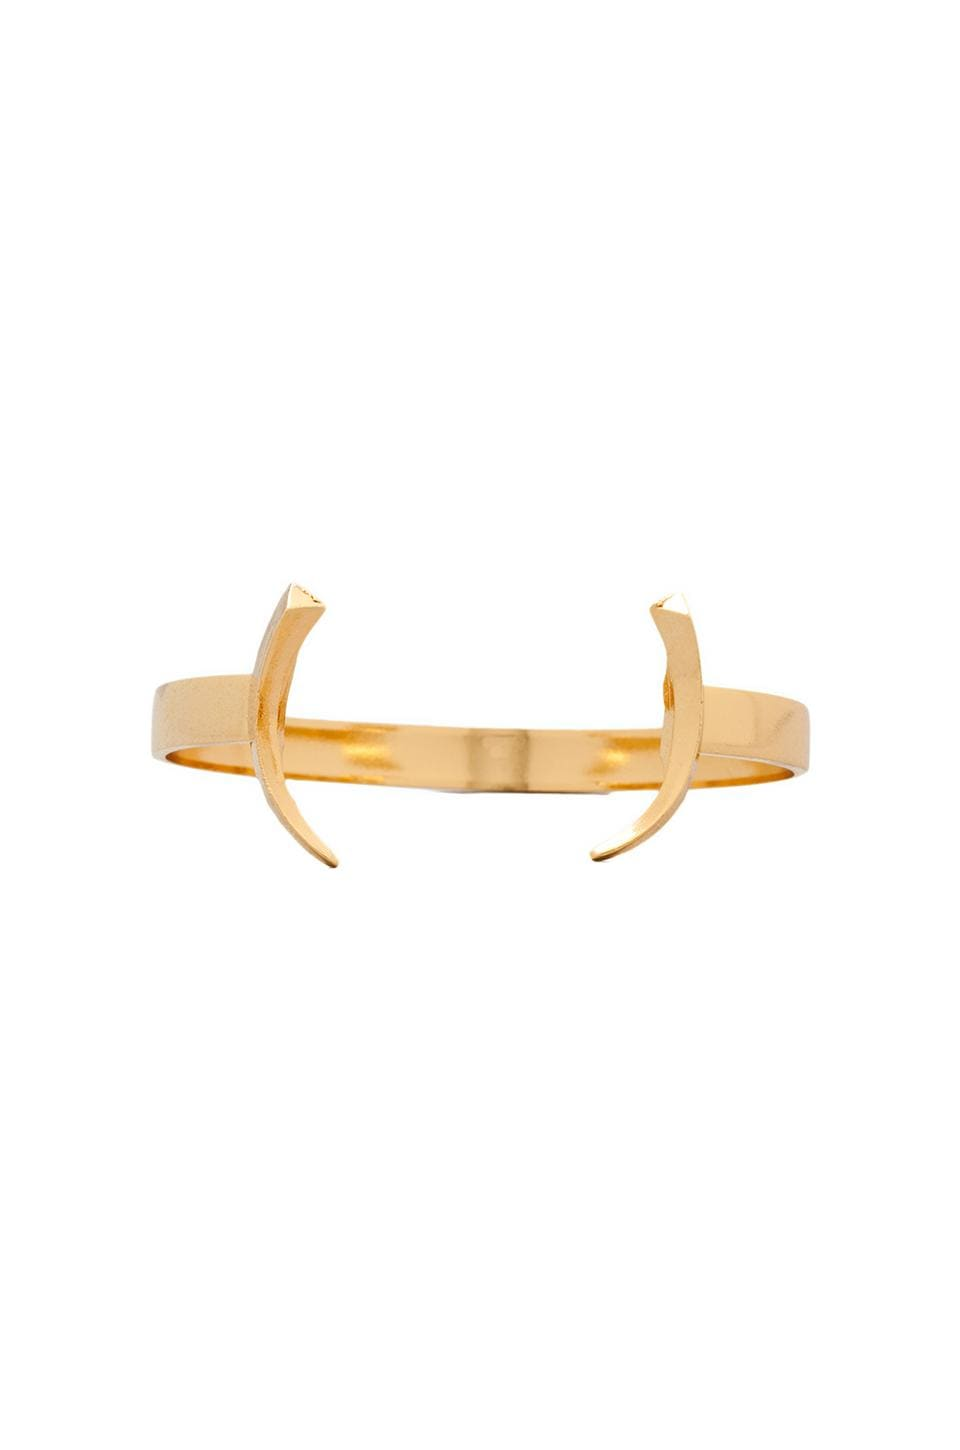 Luv AJ The Tusk Bangle in Gold